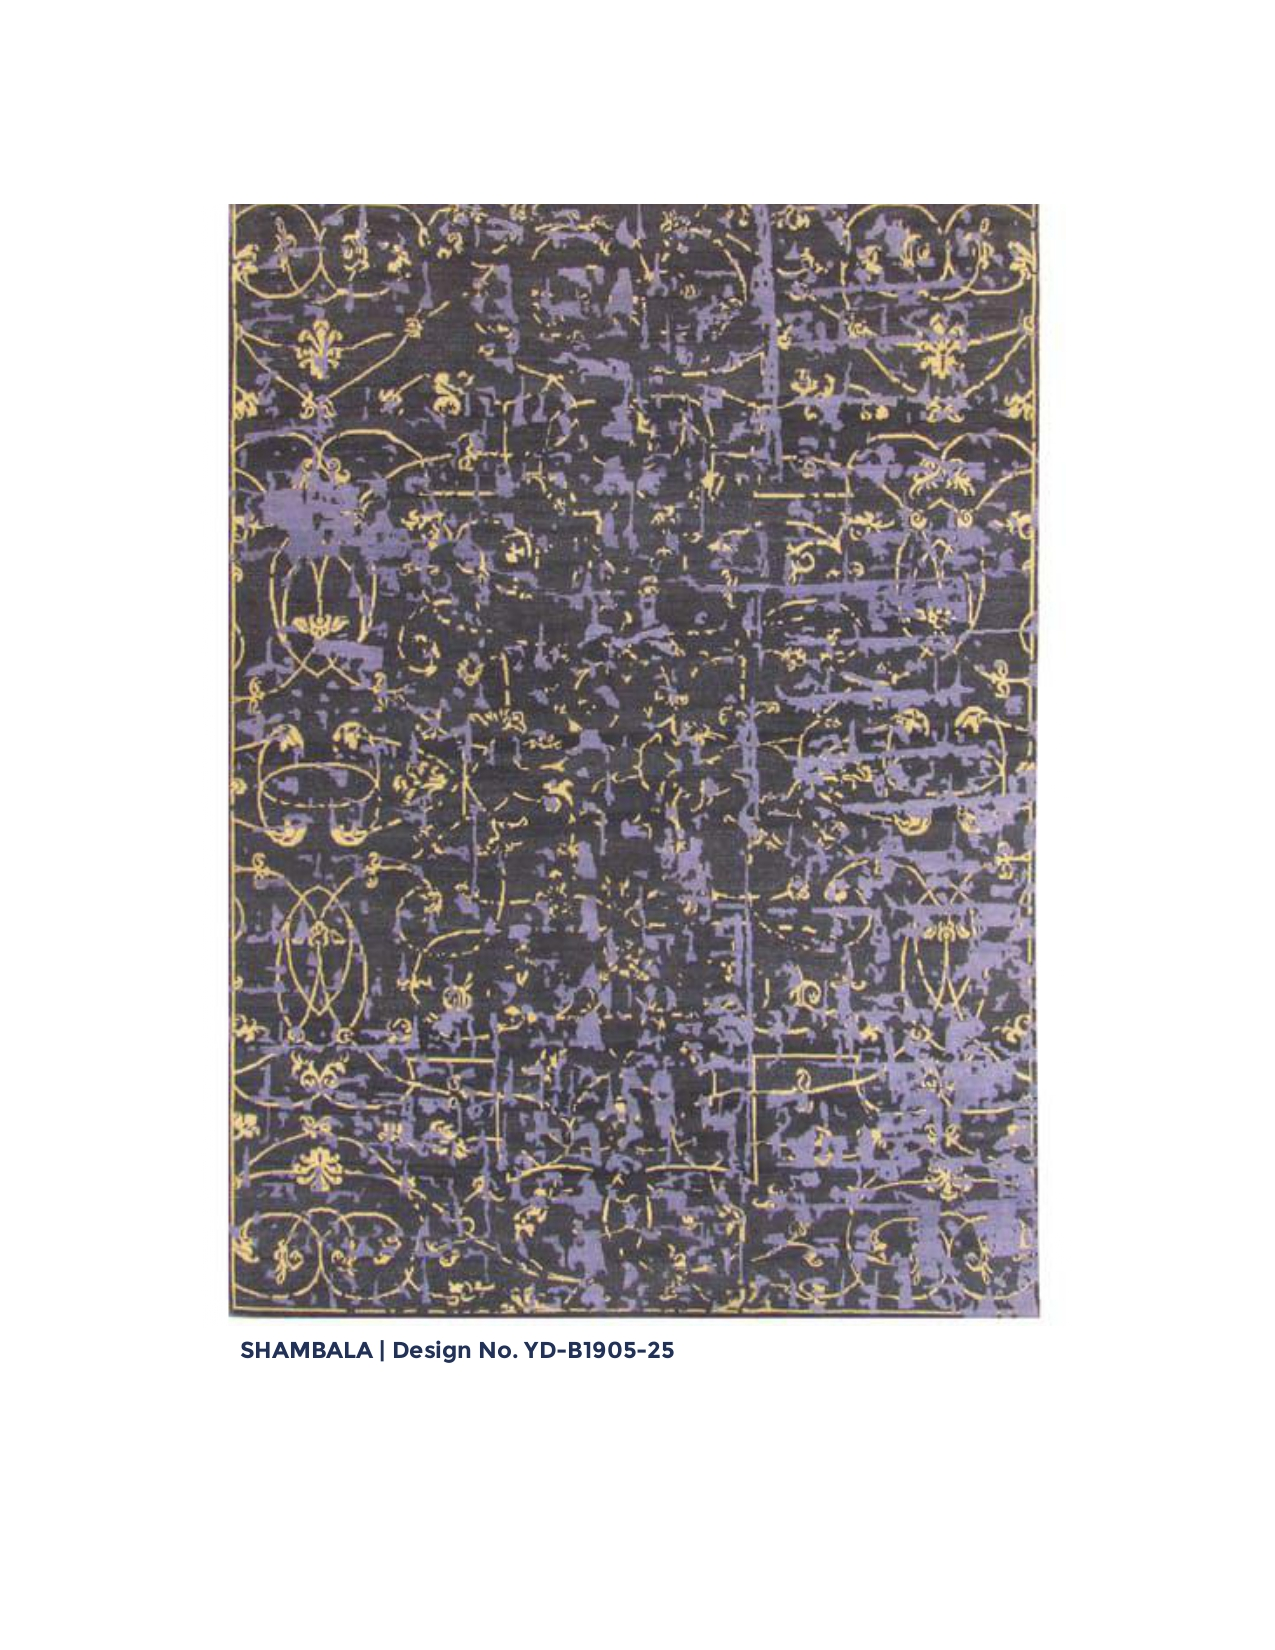 Hand_Knotted_CC_1905_30.jpg